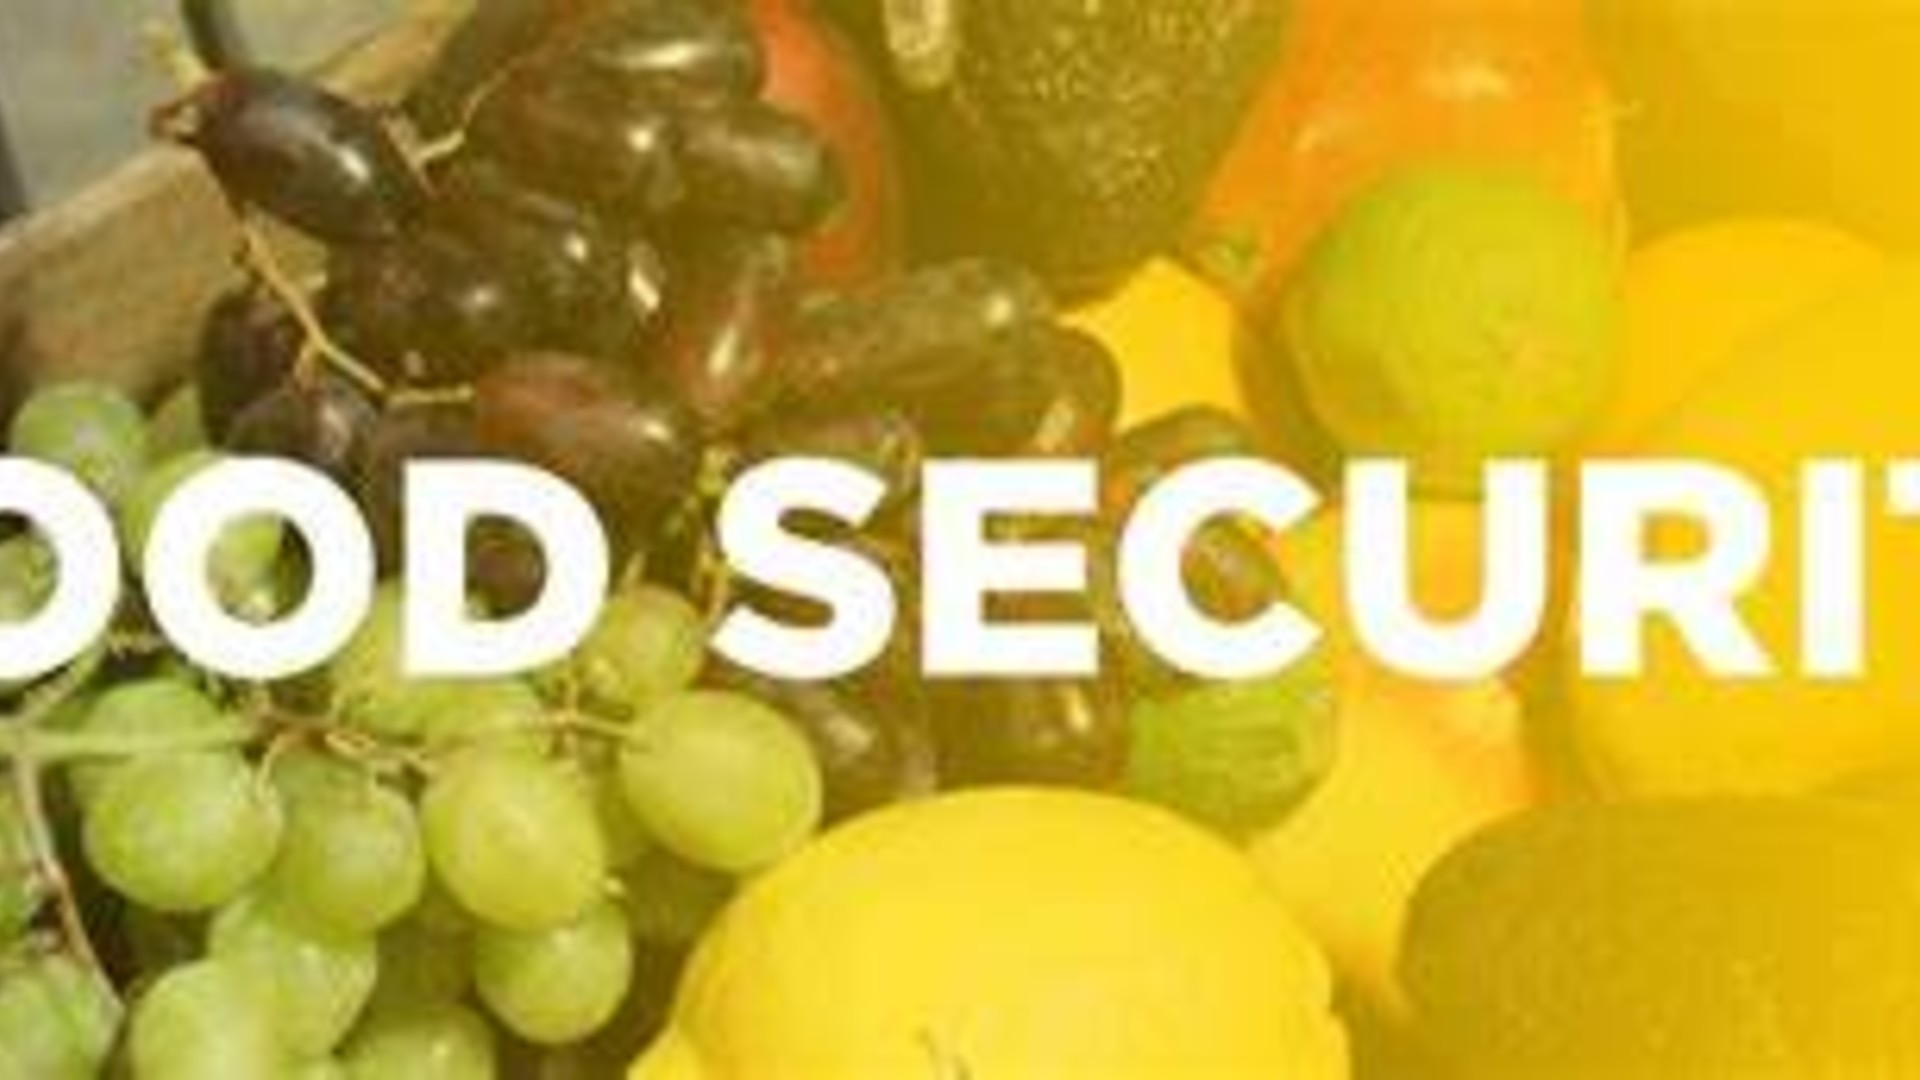 Food Security-National Security Pt 1